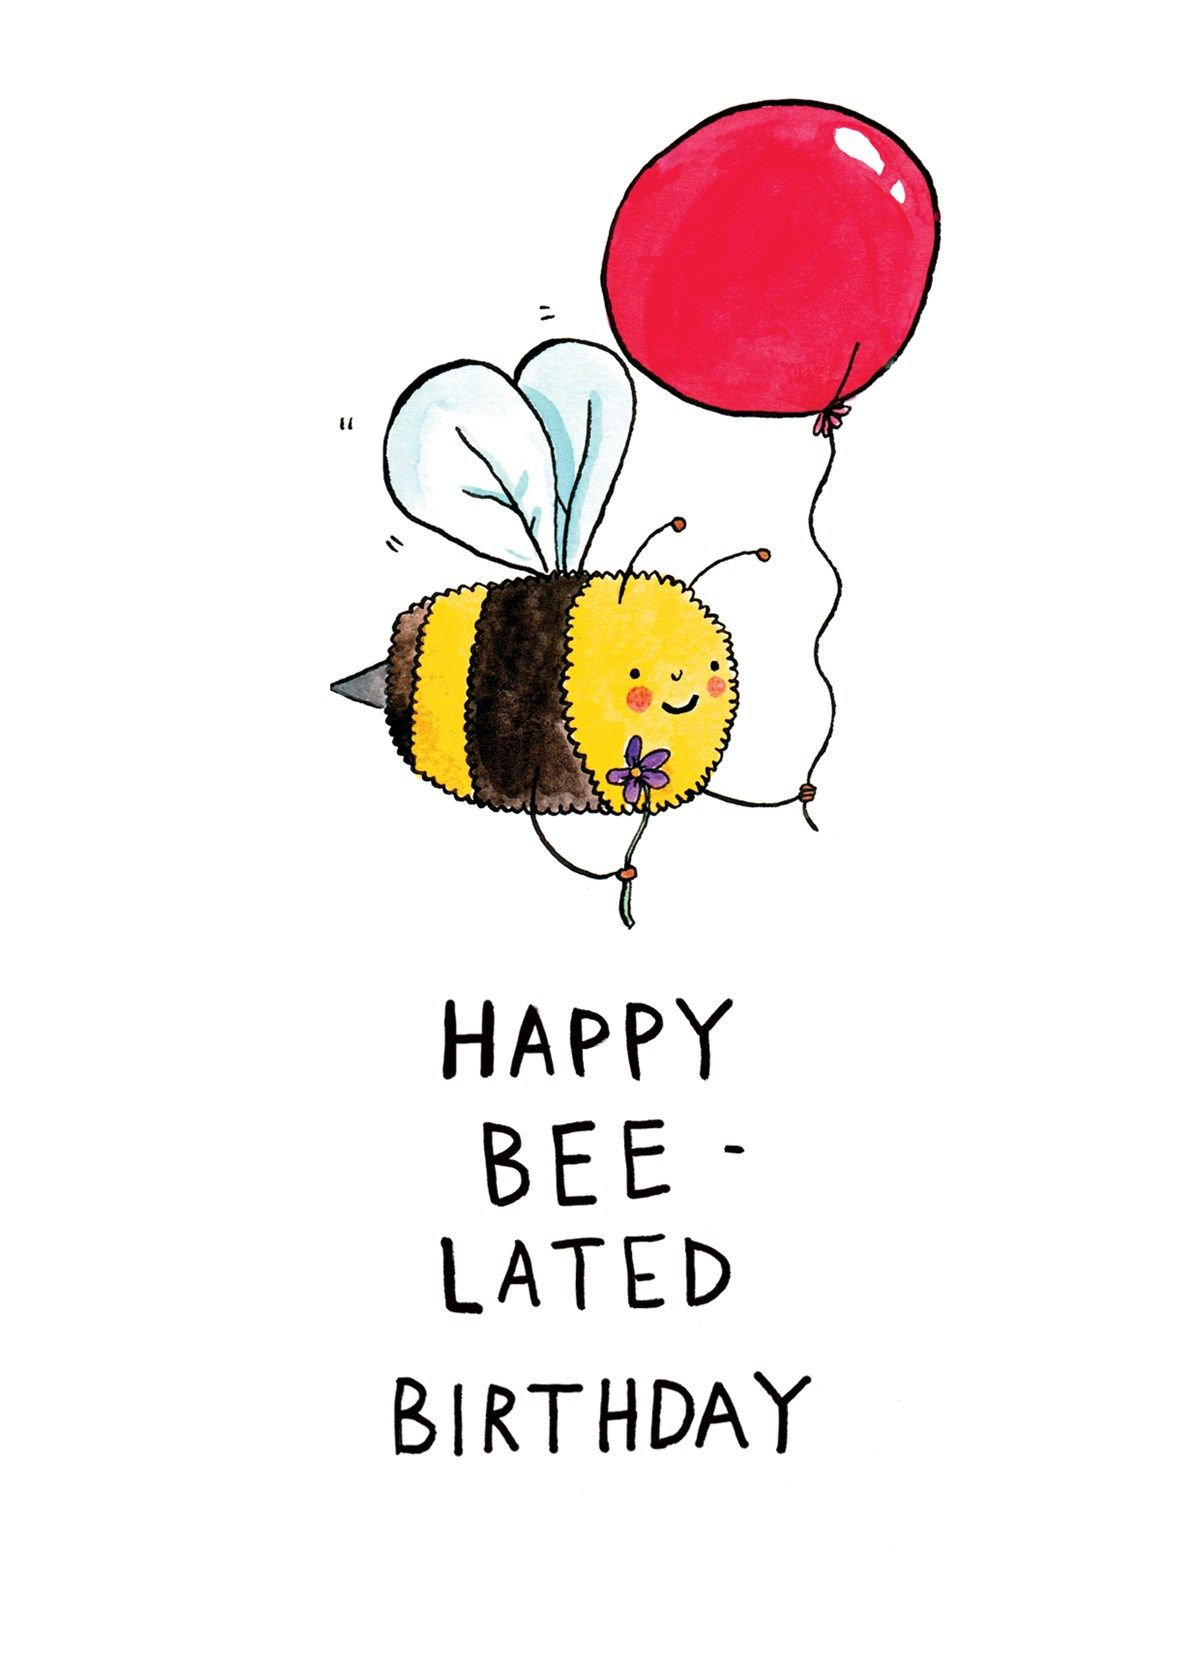 Happy Bee Lated Birthday Card Oh No You Ve Forgotten Their Birthday That S Ok Send Th Happy Late Birthday Happy Birthday Friend Happy Birthday Wishes Cards